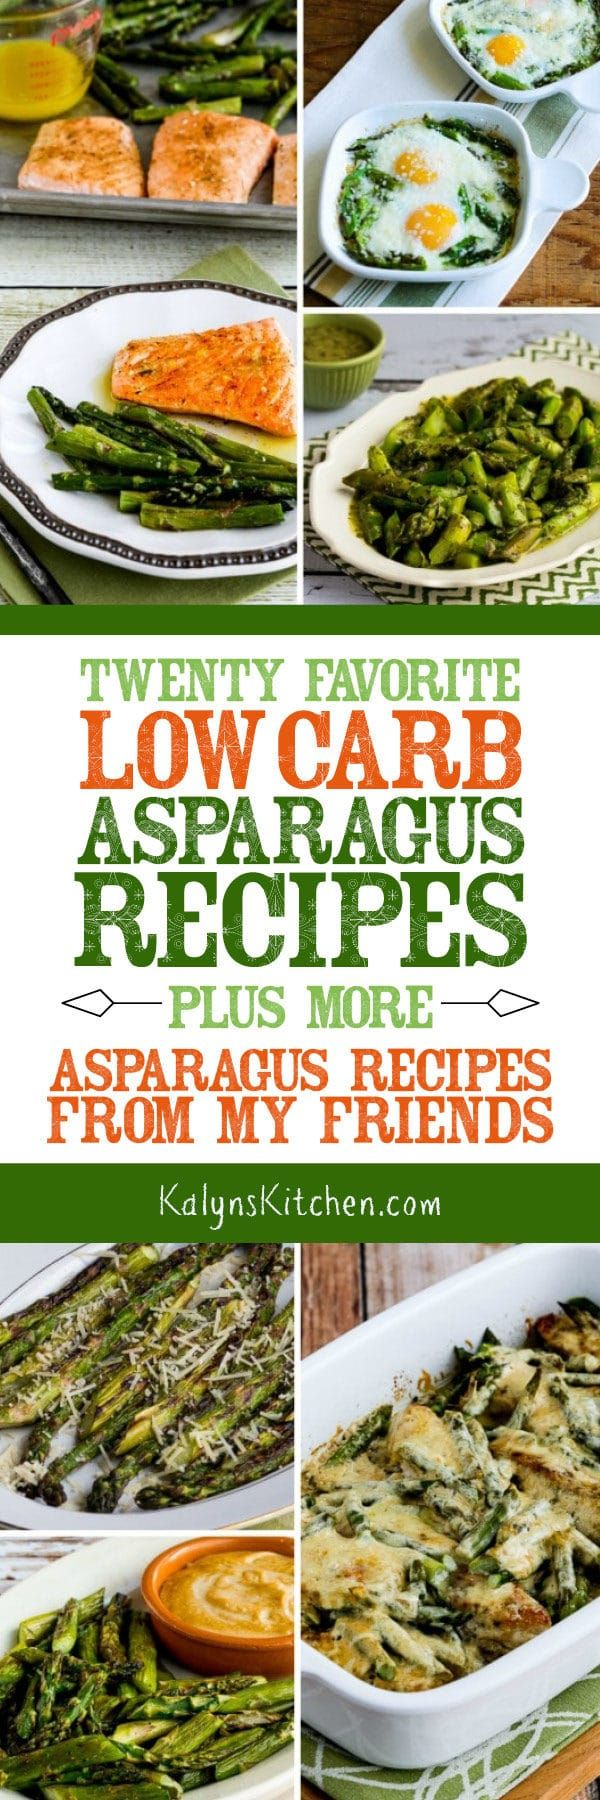 It's always a treat when fresh asparagus starts going on sale, and here are Twenty Favorite Low-Carb Asparagus Recipes (plus more asparagus recipes from my friends)! Enjoy if you're an asparagus fan like I am! [found on KalynsKitchen.com] #Asparagus #AsparagusRecipes #LowCarb #LowCarbAsparagusRecipes